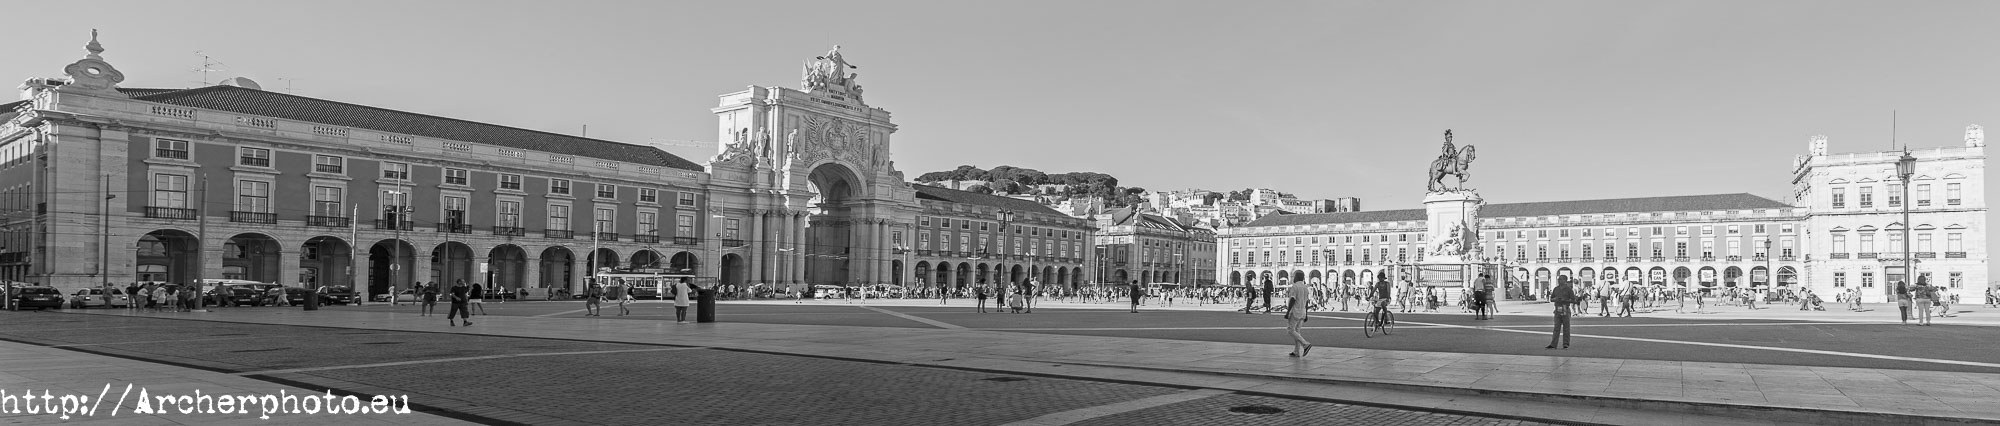 Terreiro do Paço, Archerphoto